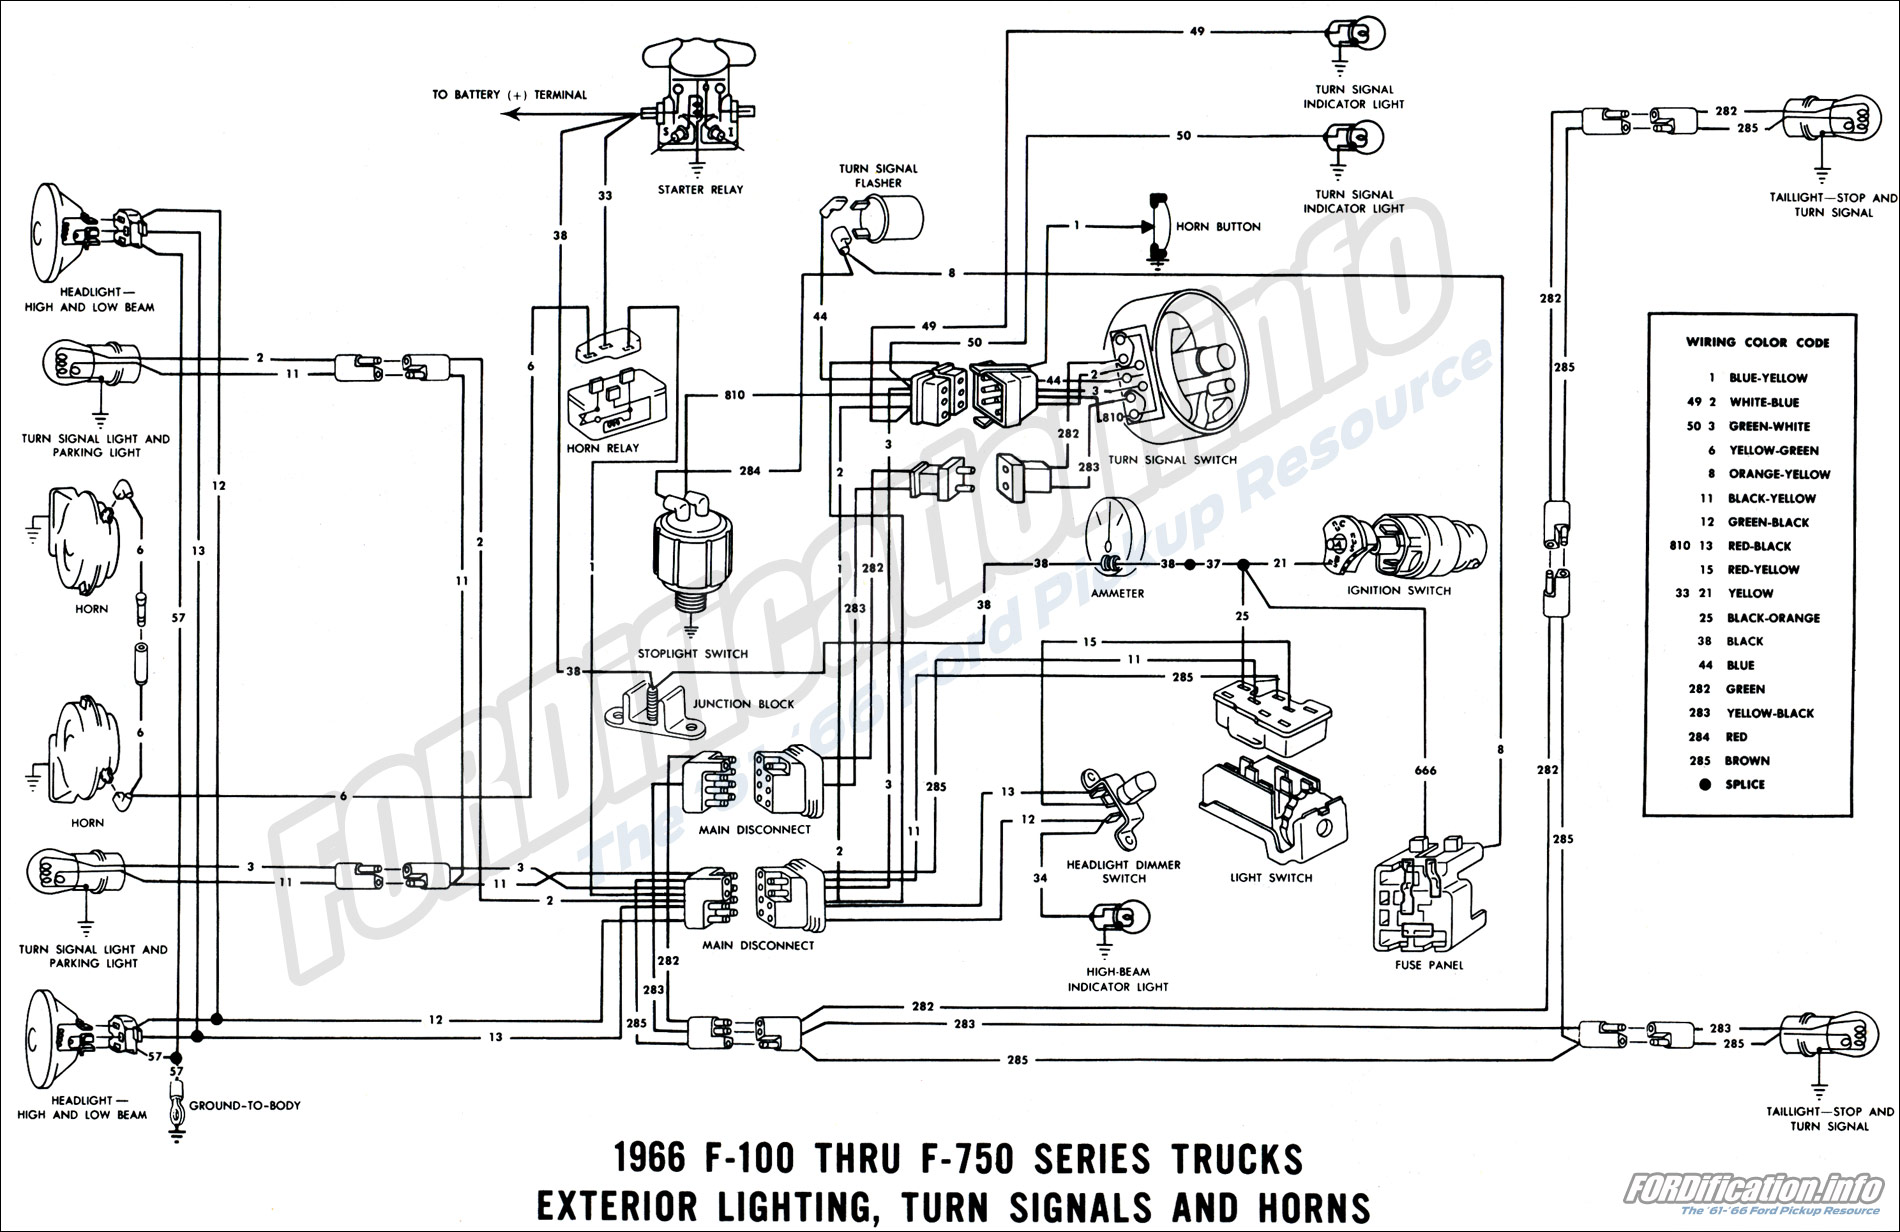 1966 ford f100 wiring schematic simple wiring diagram rh david huggett co uk